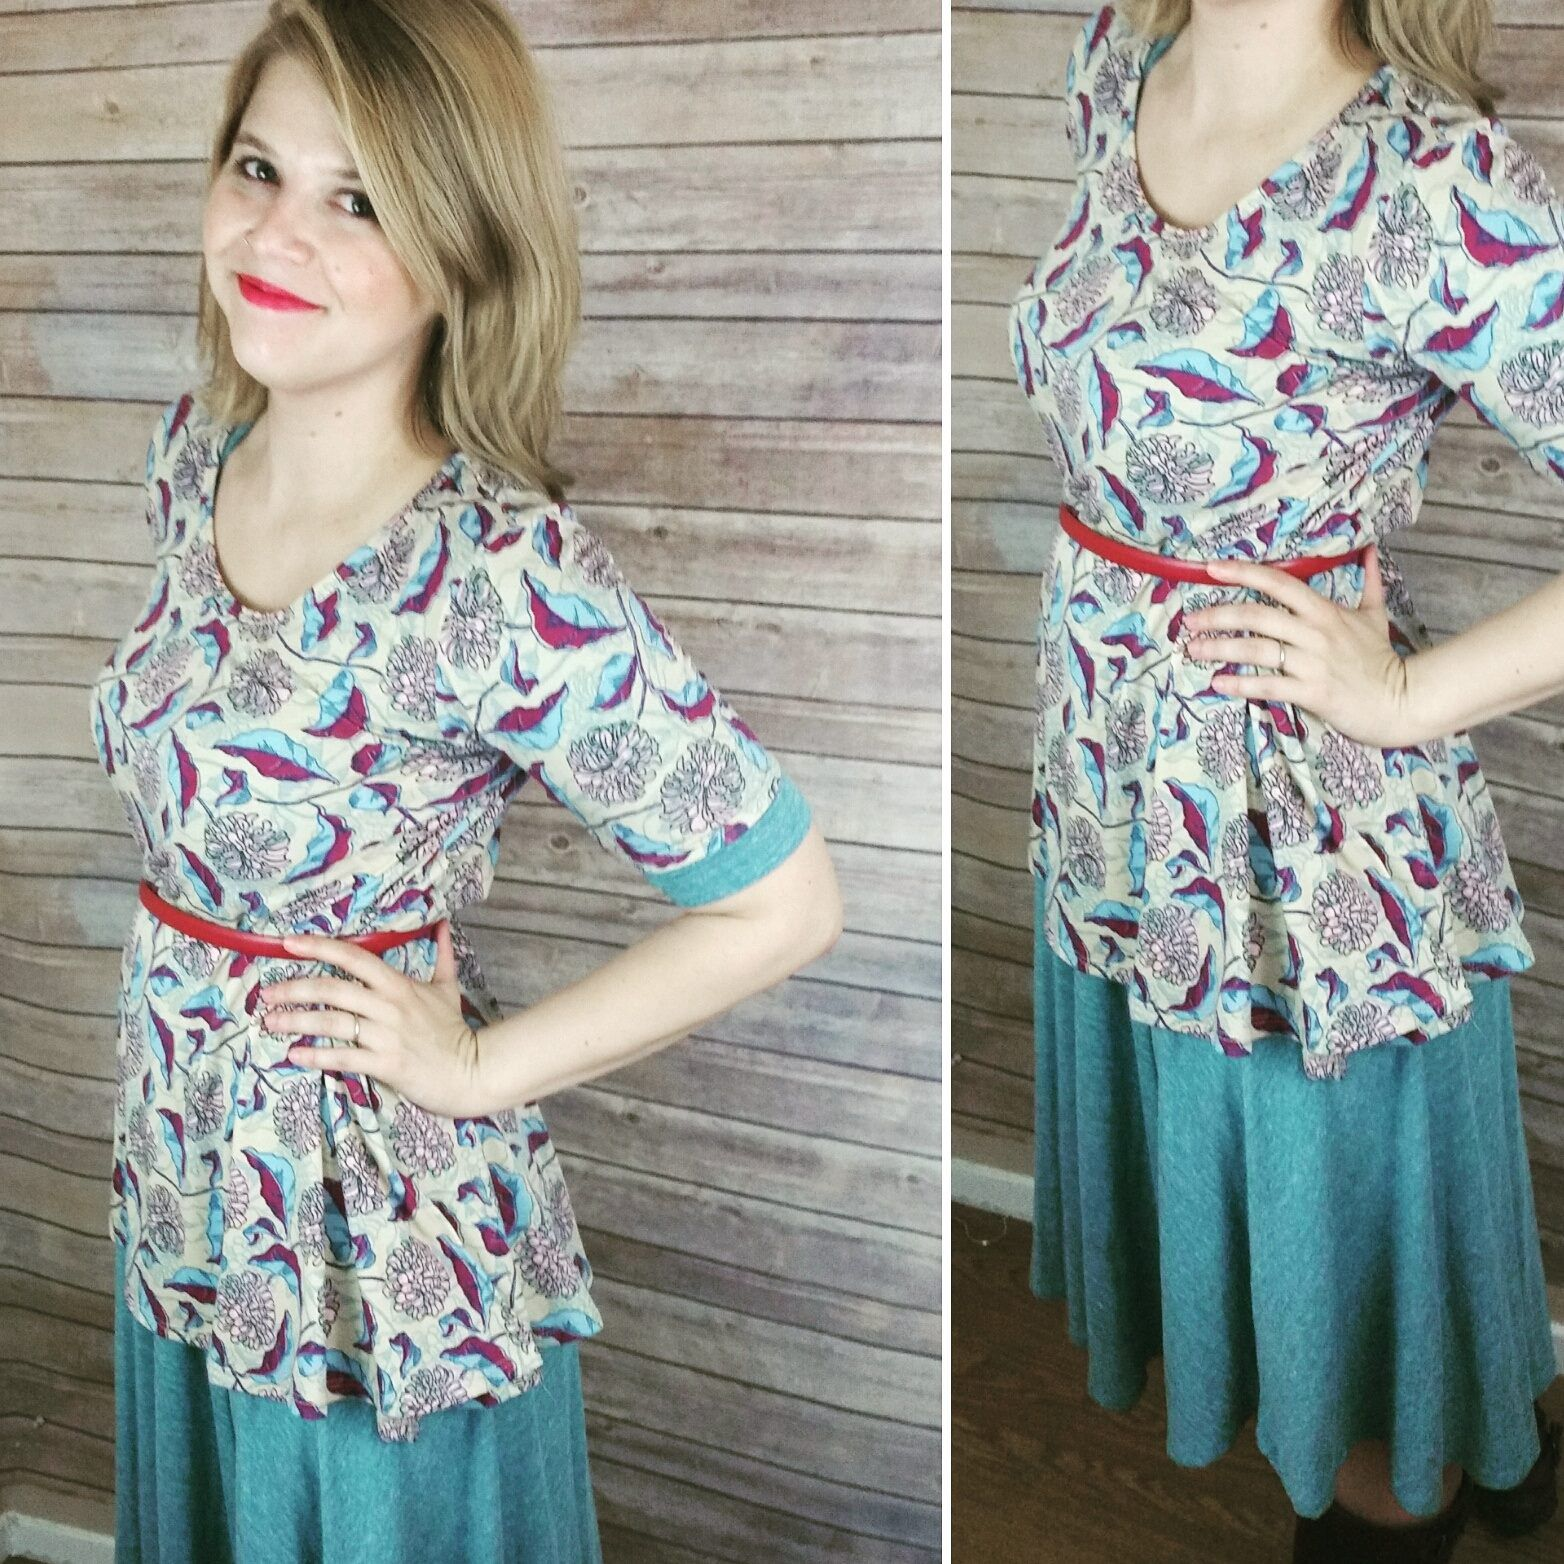 fce9af4c34c style tip    layer a lularoe perfect over your lularoe nicole dress and  belt it.  3